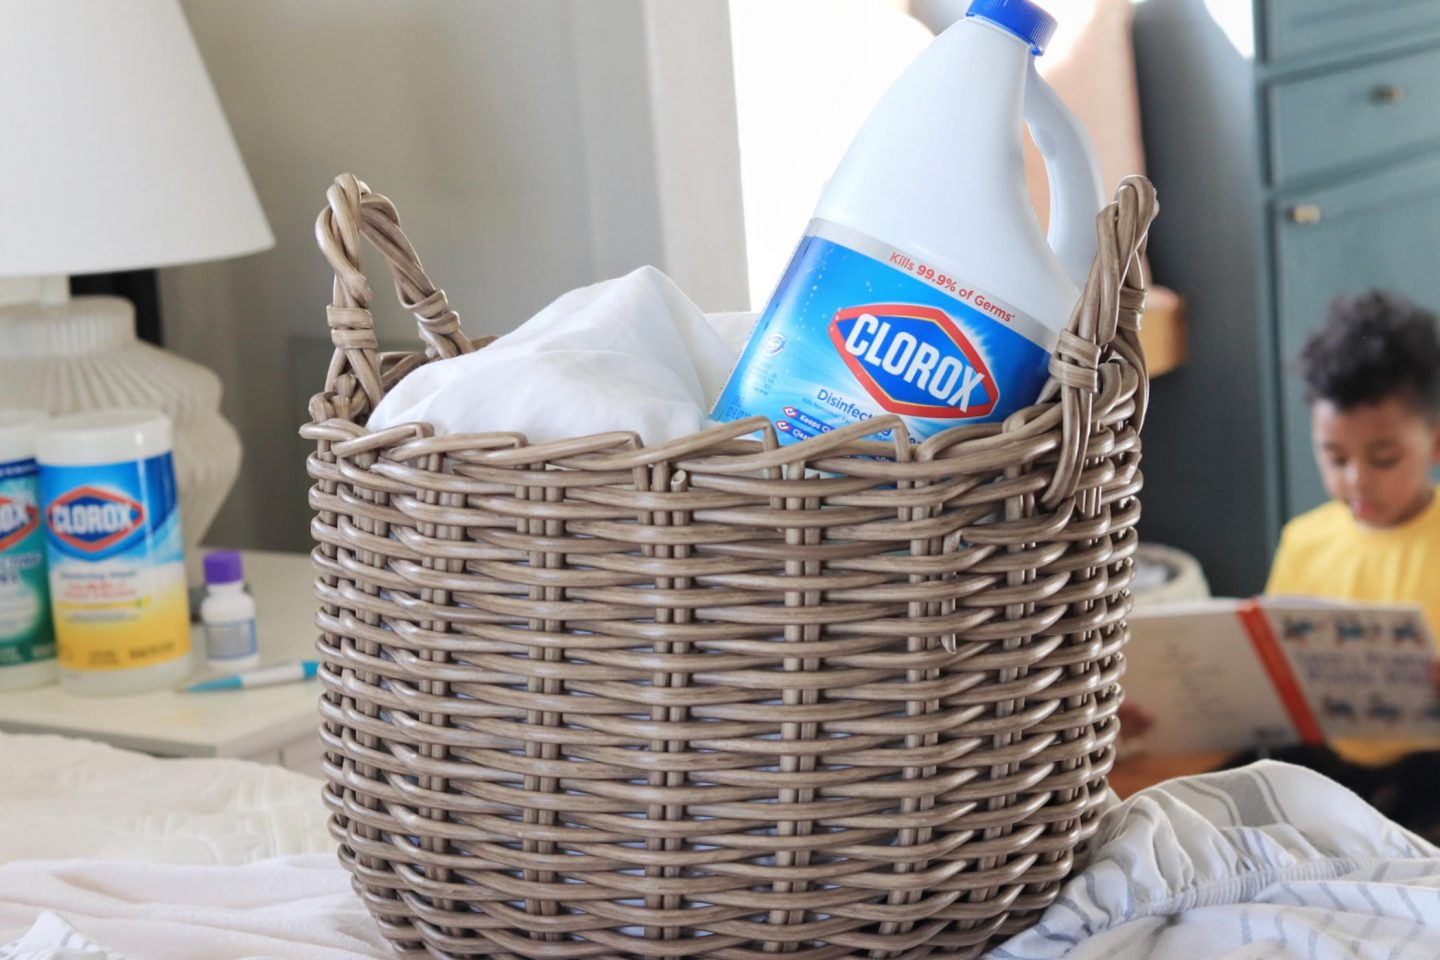 Fight cold and flu with Clorox